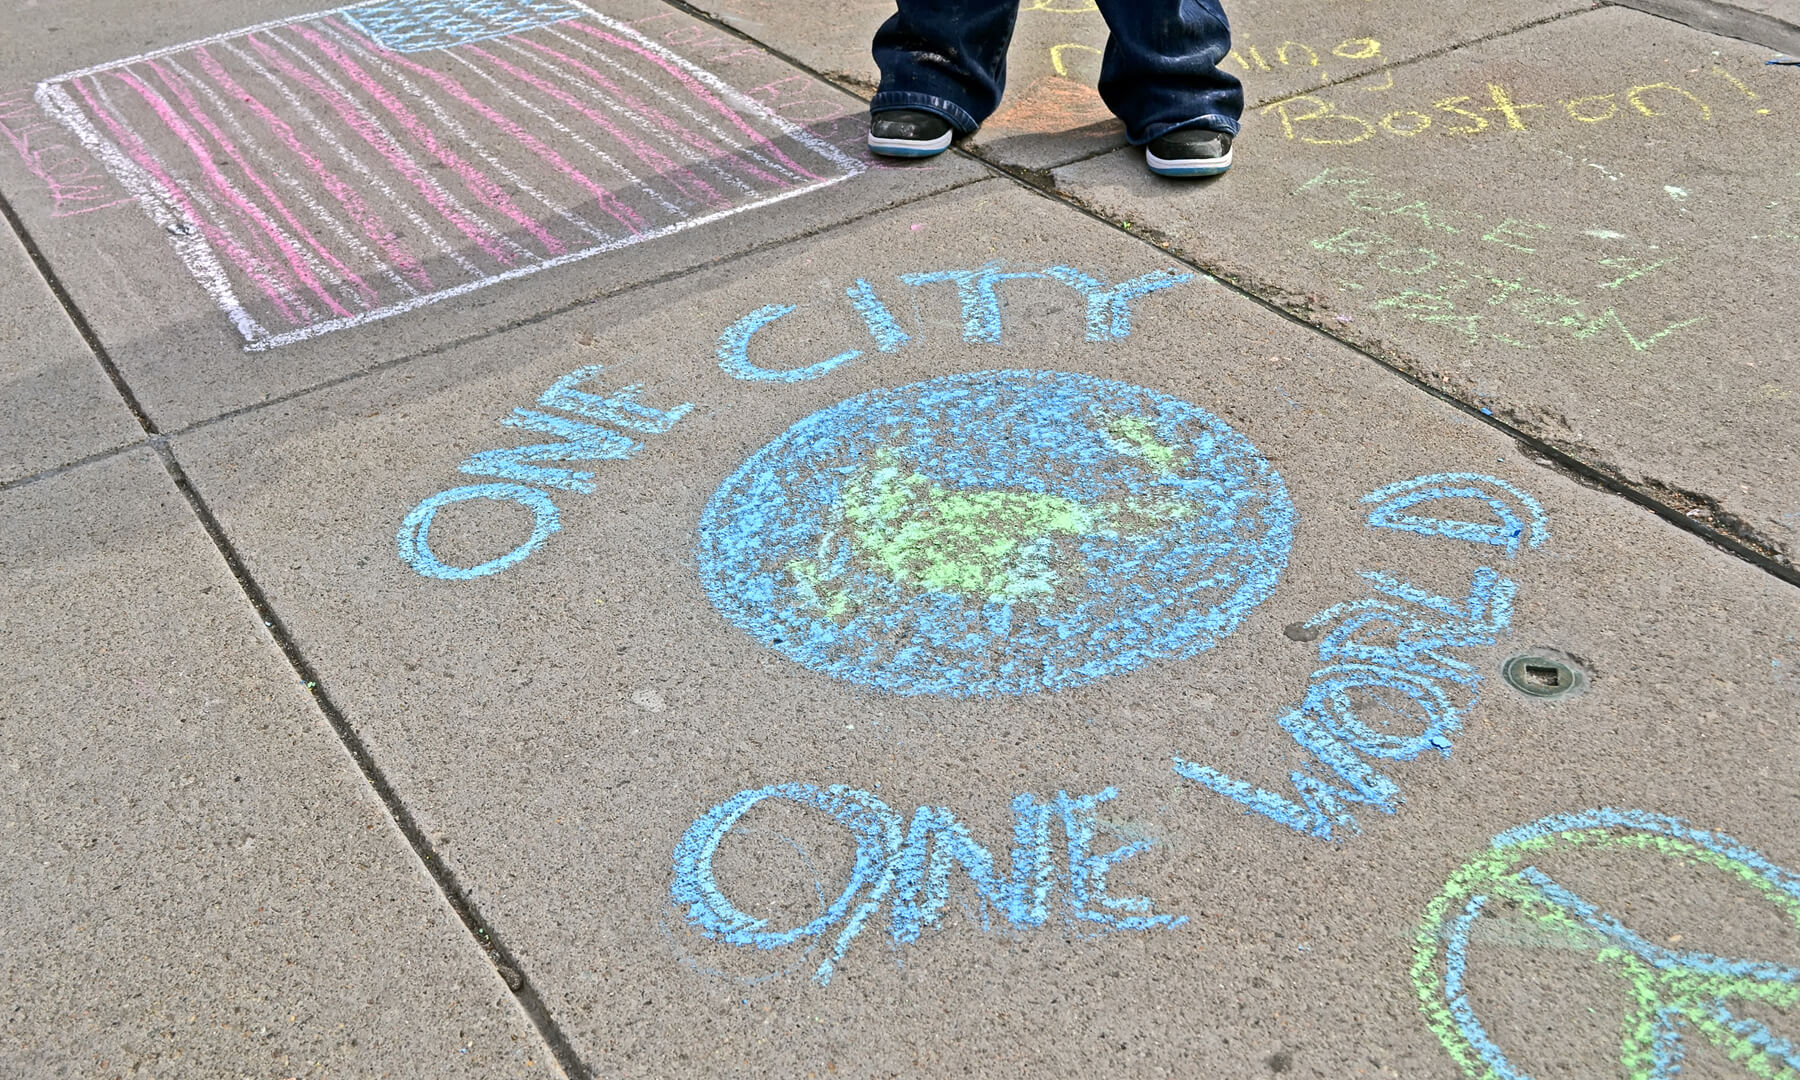 One City One World sidewalk chalk - activism - art - diversity - unity